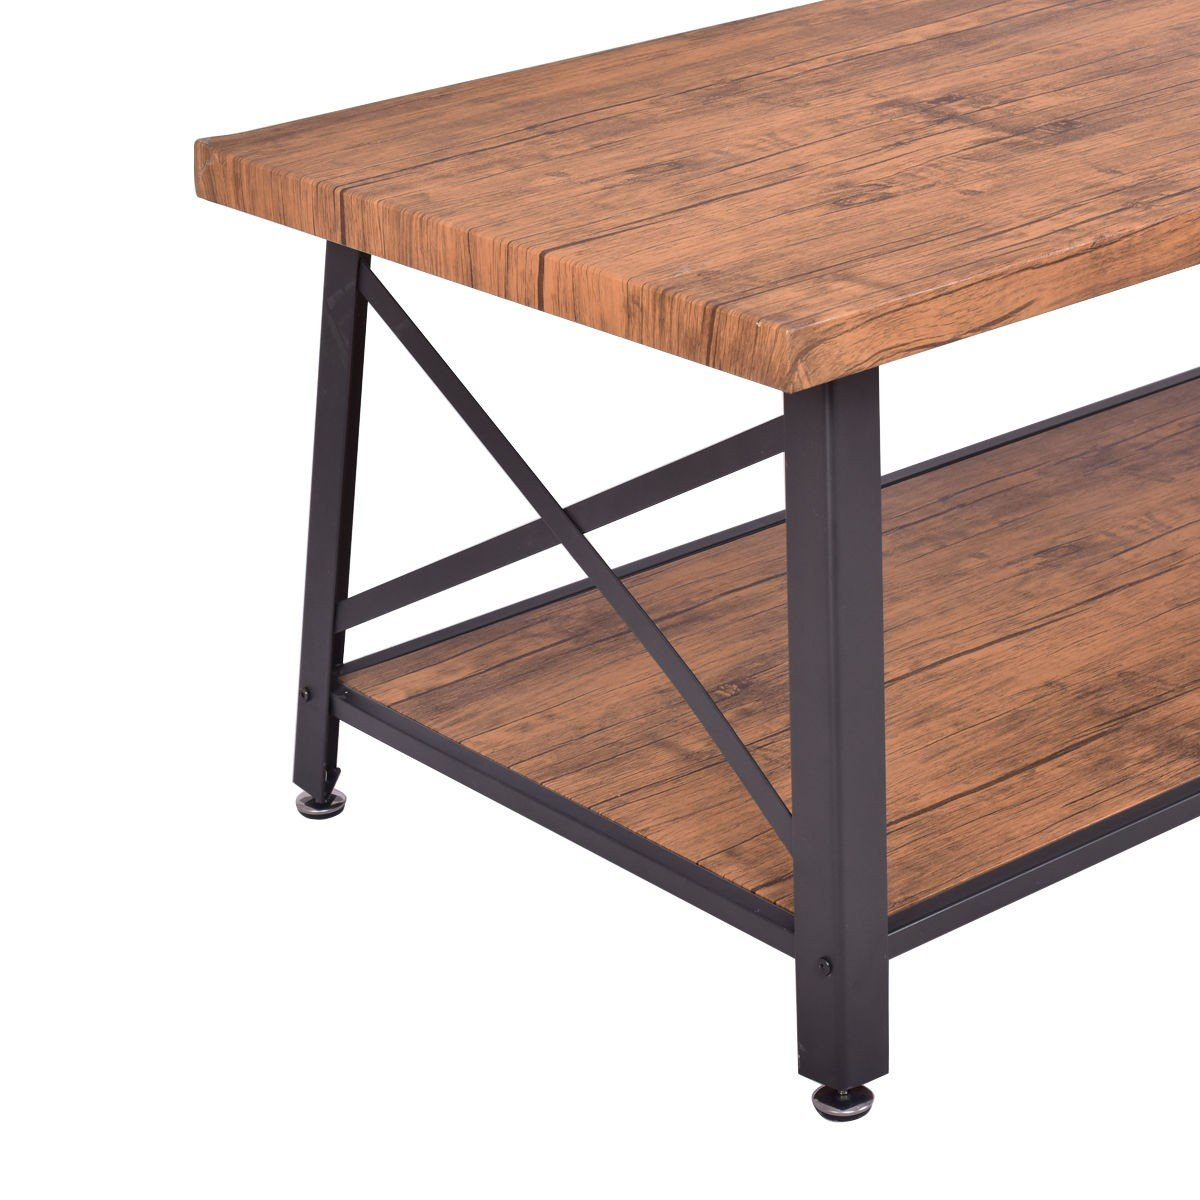 Rectangular Metal Frame Wood Coffee Table with Storage Shelf By